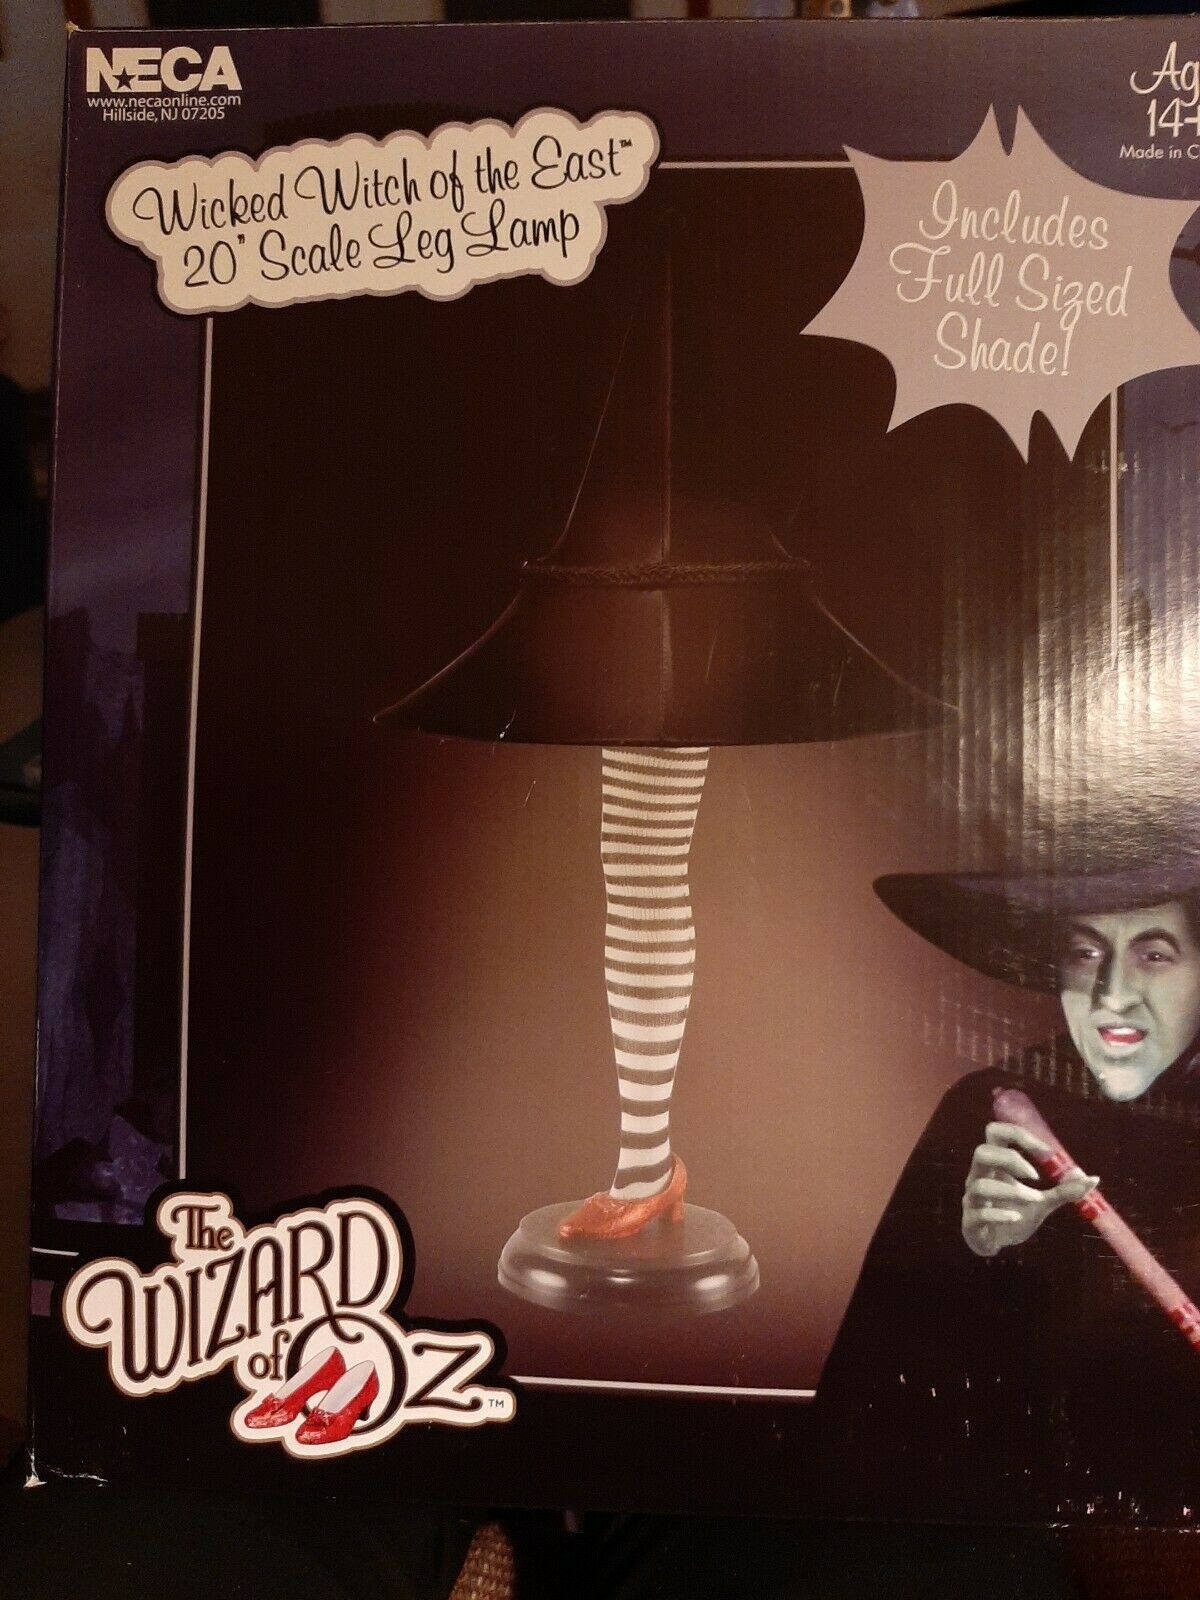 """Witch Leg Lamp Unique Neca Wizard Of Oz Wicked Witch Of the East 20""""scale Leg Lamp Brand New"""